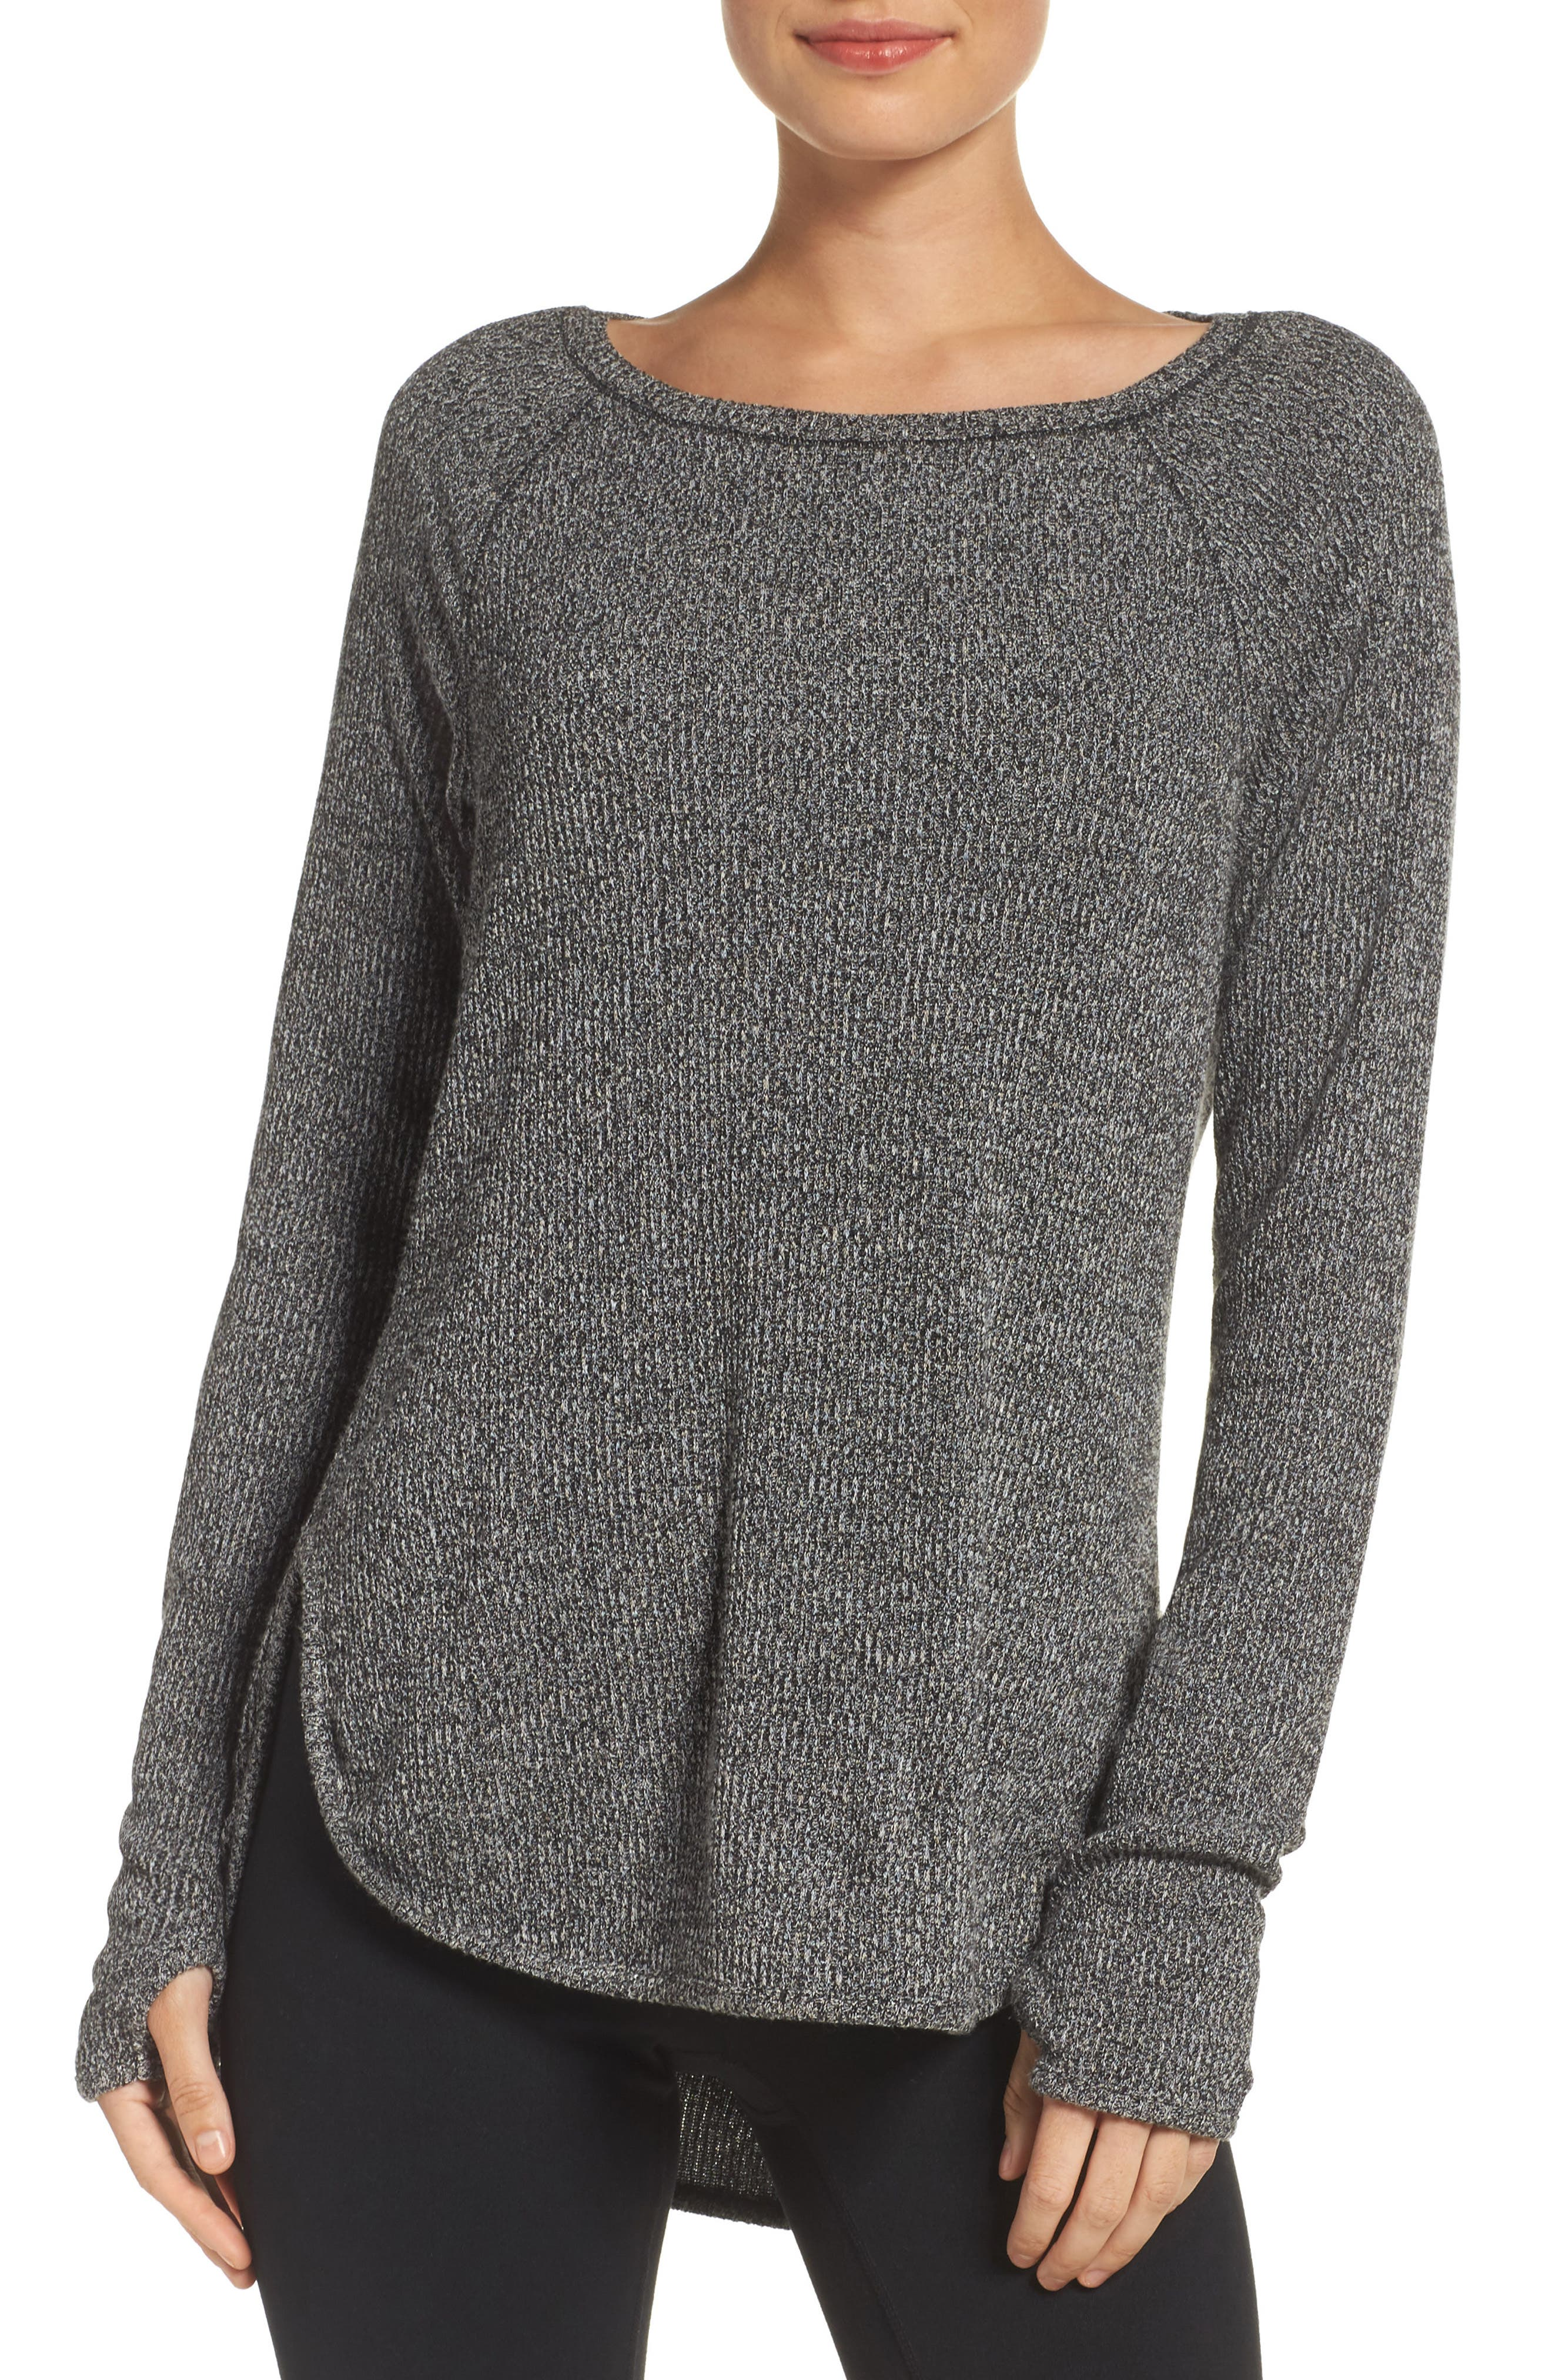 Don't Sweat It Sweater,                         Main,                         color, 001